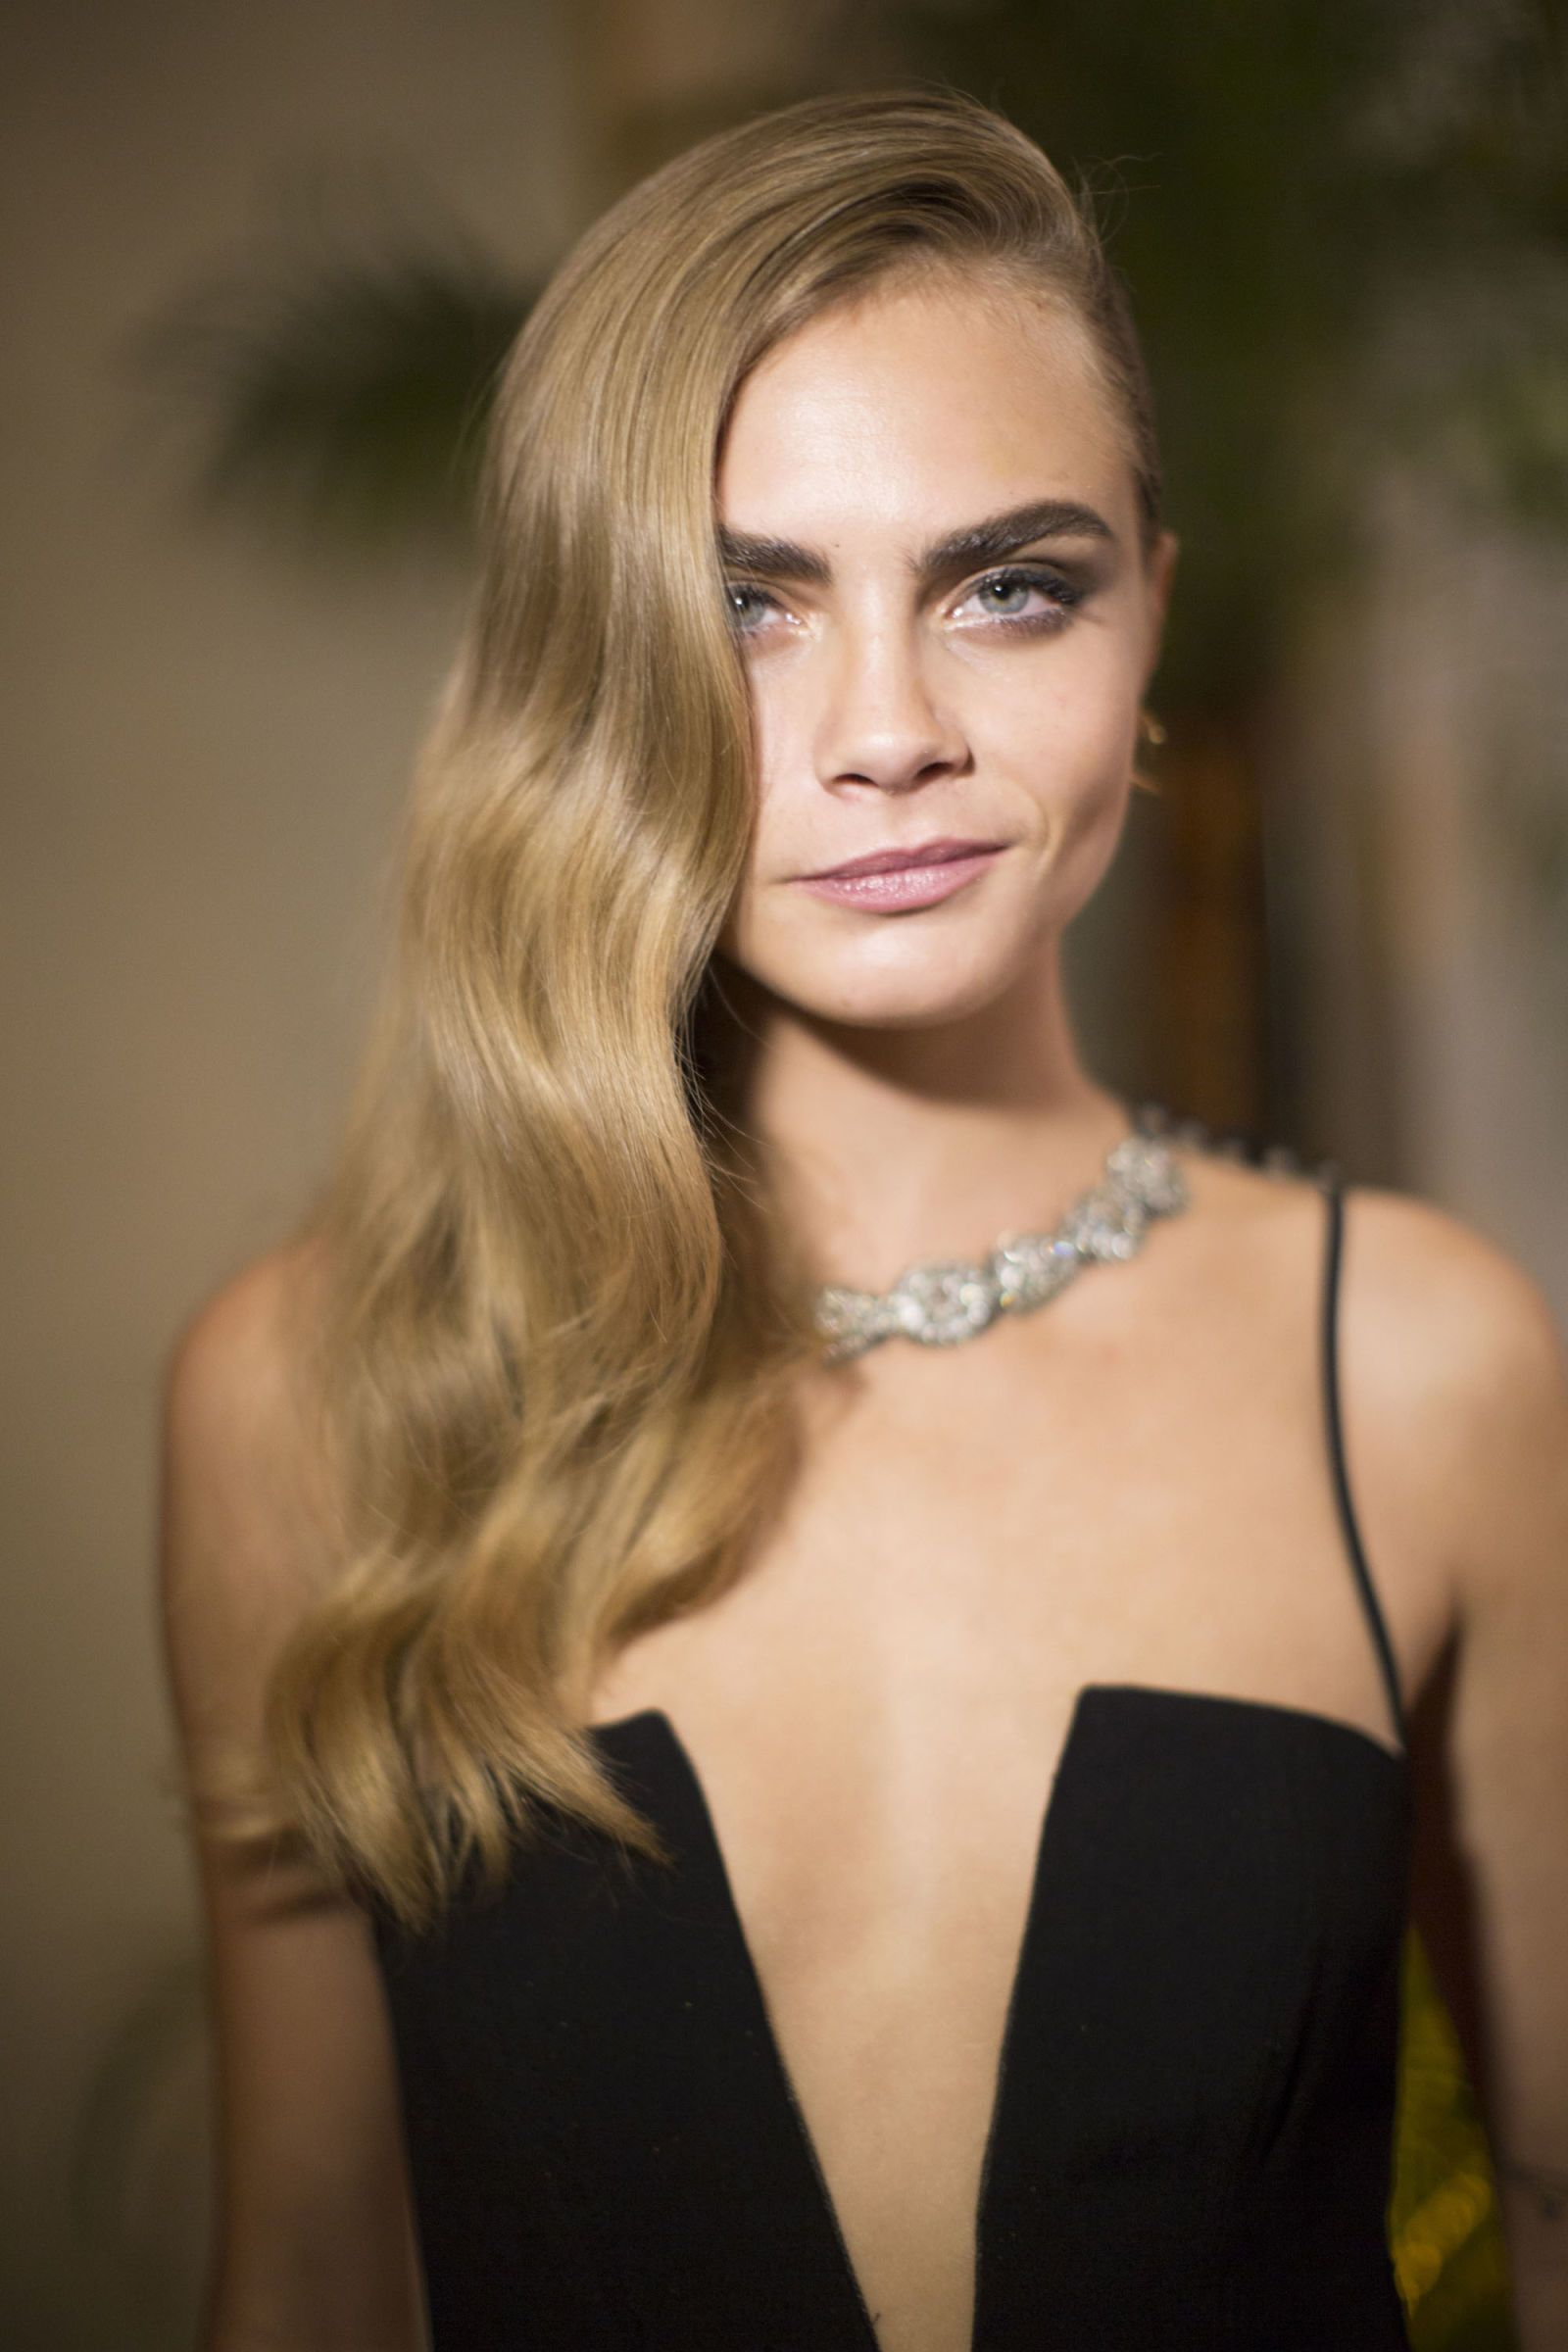 Neutral Hair Is the New Spring Trend That Looks Great on Everyone